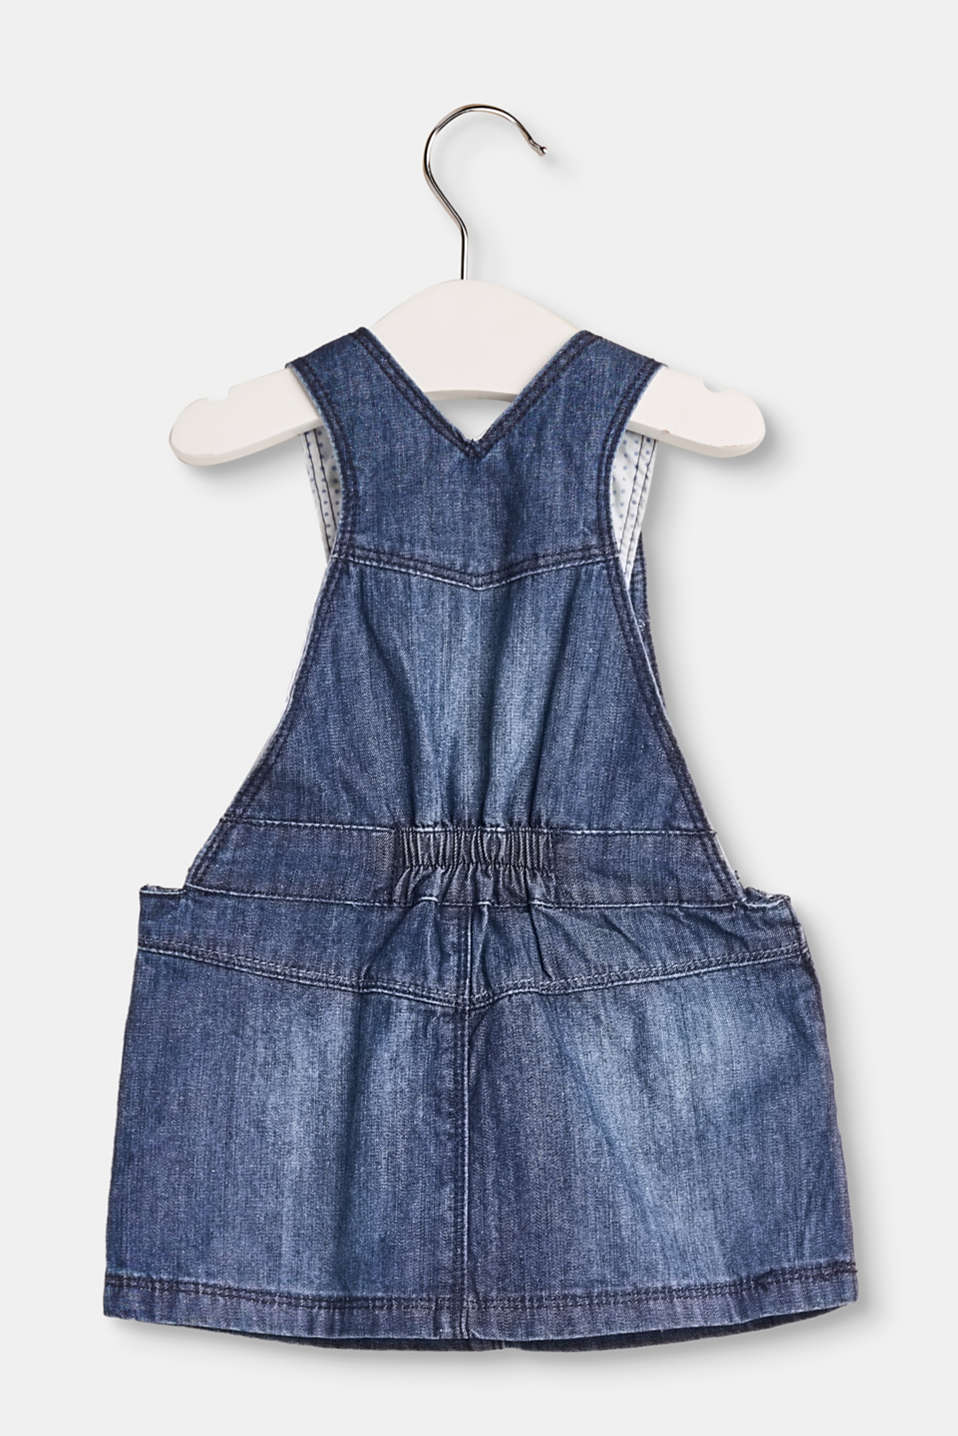 Cute cotton denim dungaree dress